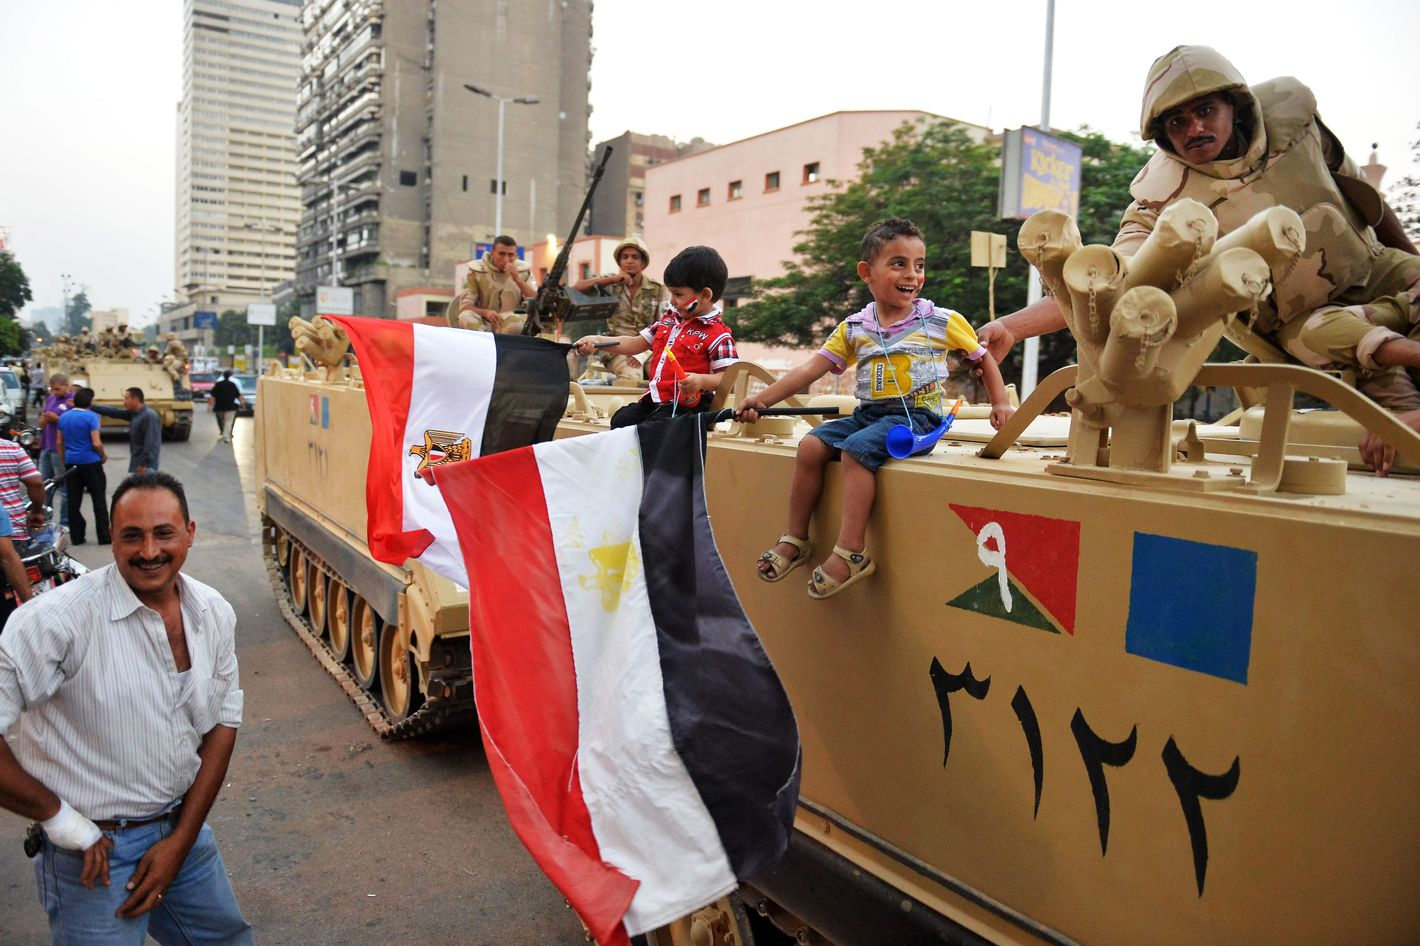 Egyptian children hold national flags as they pose for pictures near army soldiers on an armoured personnel carrier (APC) in a Cairo street on July 3, 2013 after the Egyptian army deployed dozens of armoured vehicles near gathering of Islamist President Mohamed Morsi's supporters. Opposition leader Mohamed ElBaradei and the heads of the Coptic Church and Al-Azhar -- Sunni Islam's highest seat of learning -- will unveil an army roadmap for Egypt's future after President Mohamed Morsi, state television said.